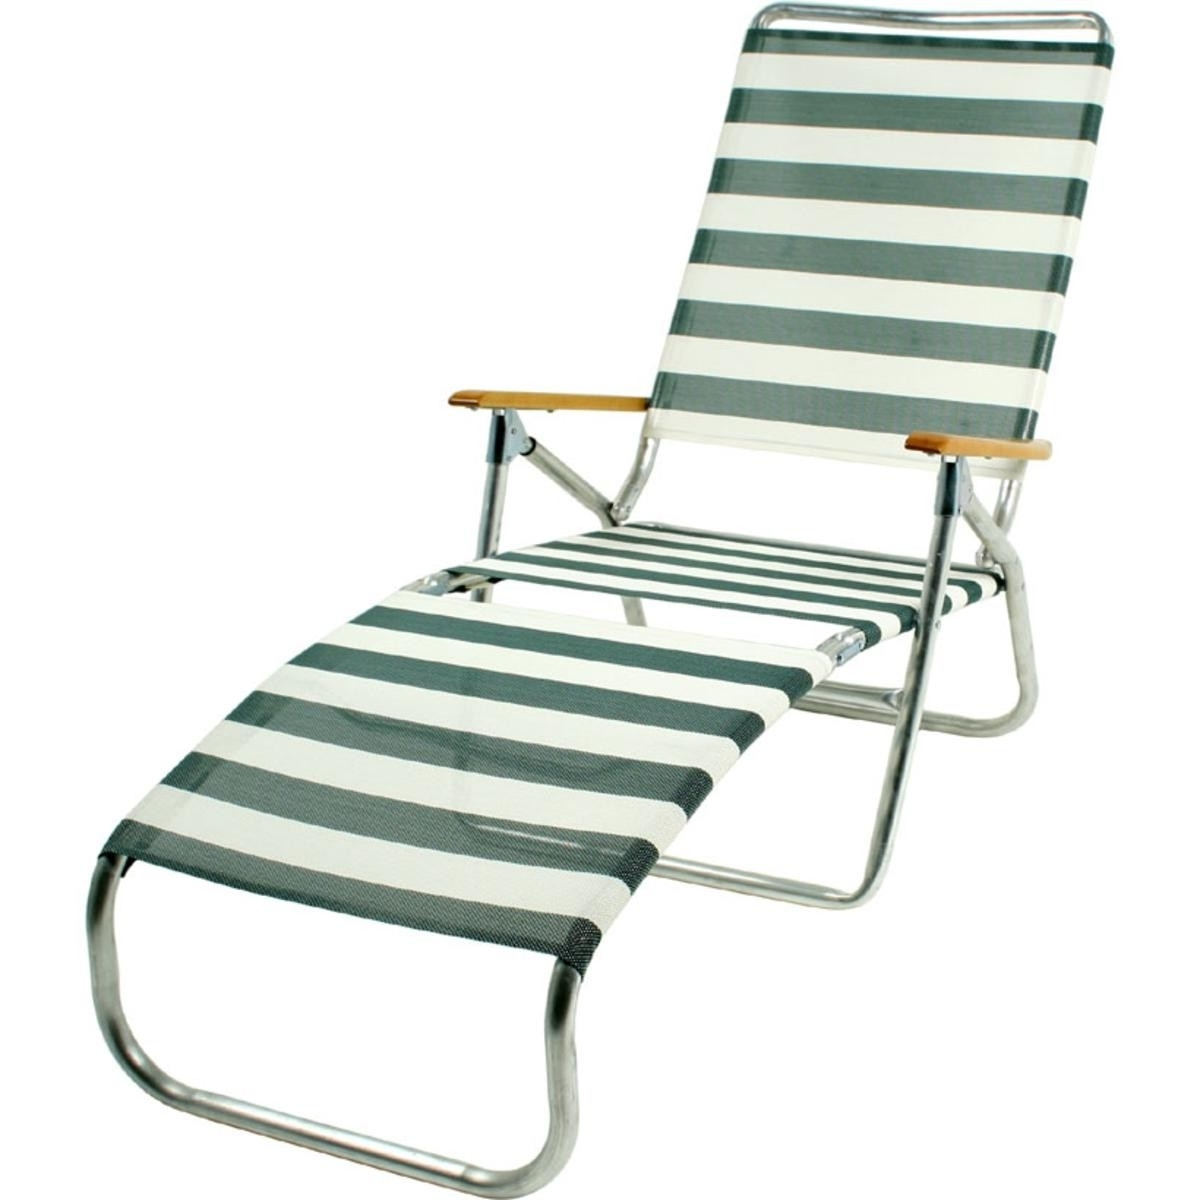 Folding Chaise Lounge Chairs Within Favorite Folding Beach Chaise Lounge Chairs Ideas With Idea  (View 6 of 15)